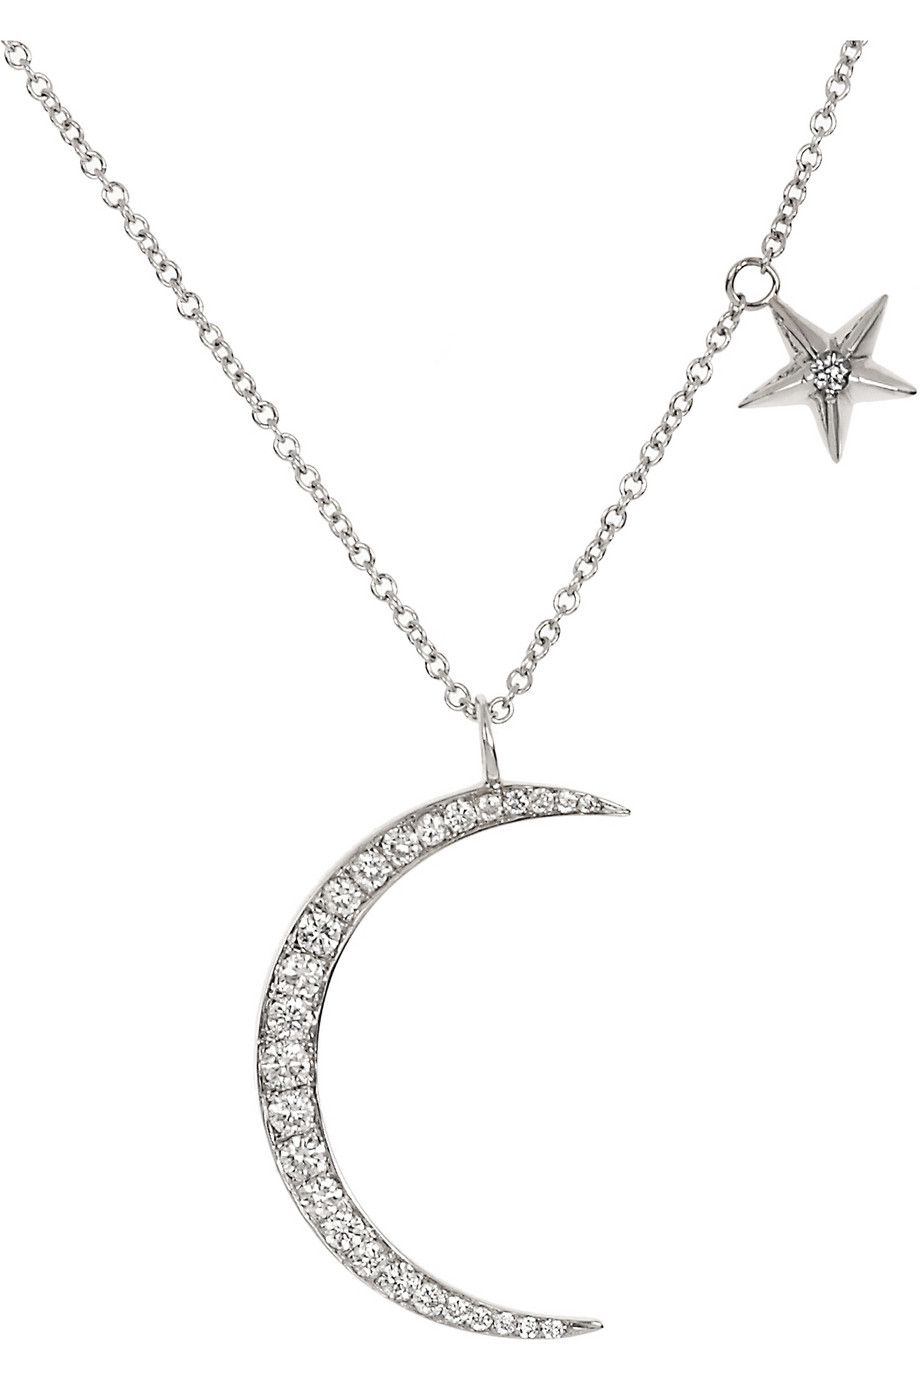 Anita Ko 18kt White Gold Moon Star Pendant Necklace With